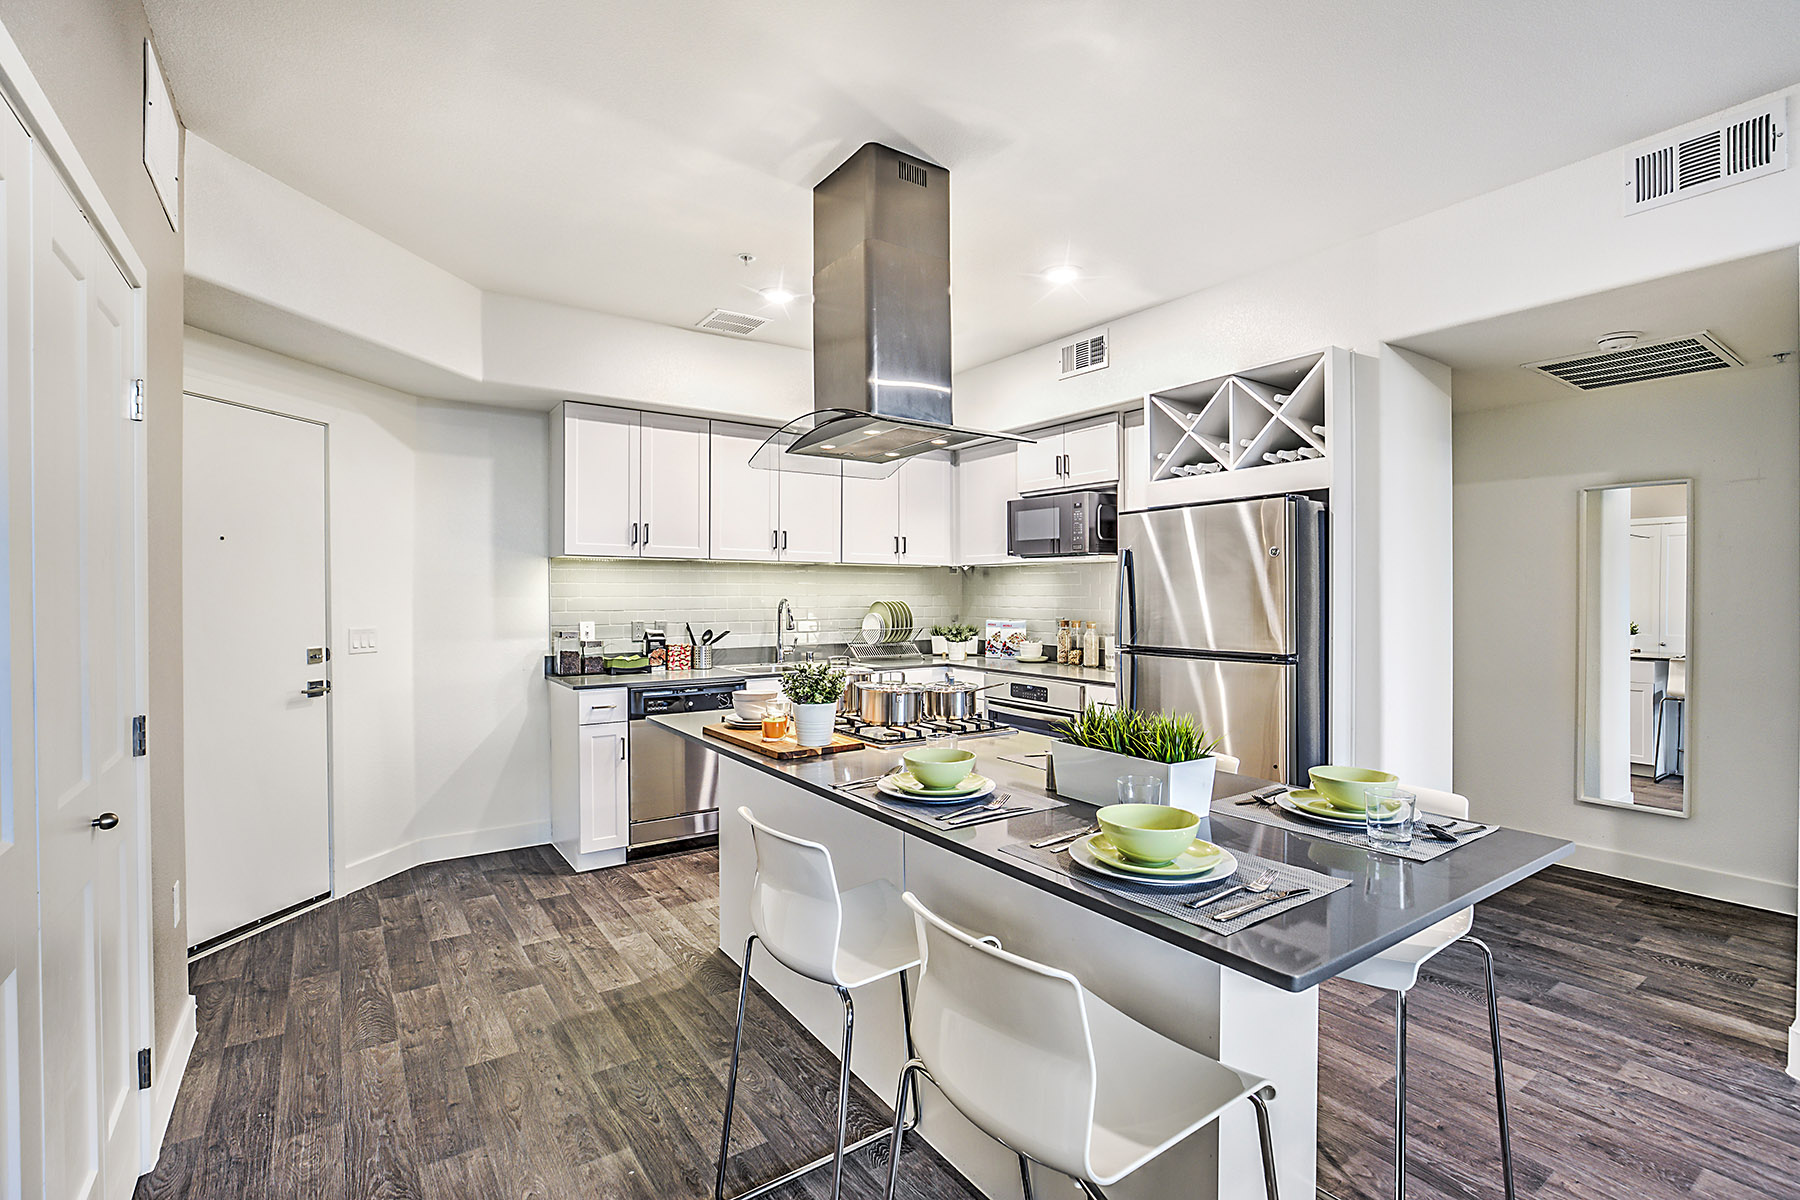 Open-concept kitchen with large island set up with dinner placements, stainless steel appliances, and white cabinetry.